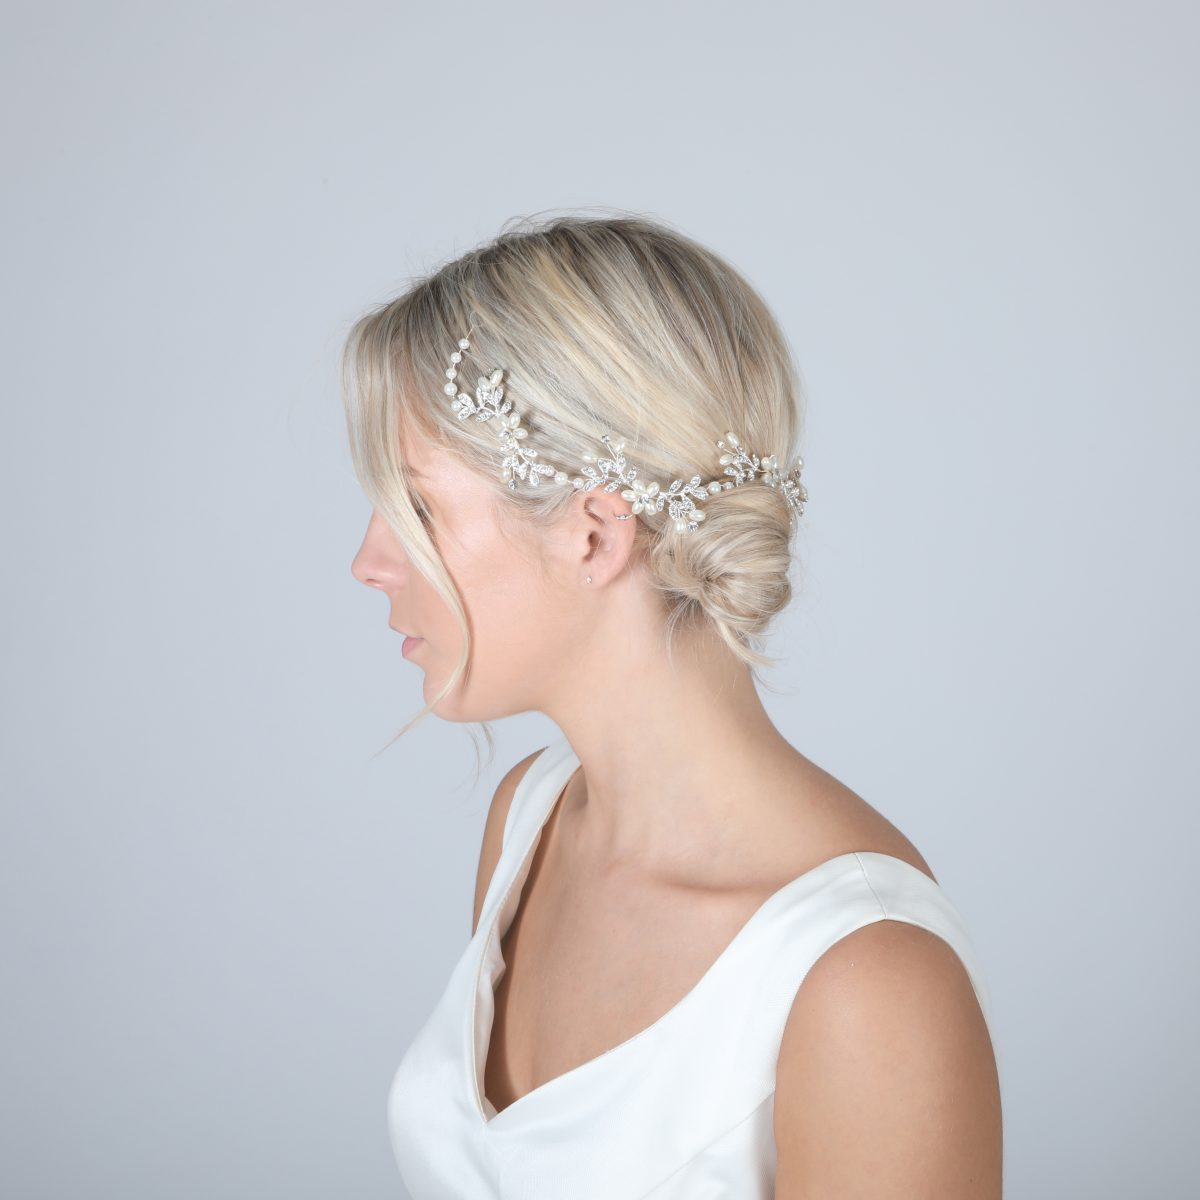 Perfect Bridal PBH7015 Hair Vine 2